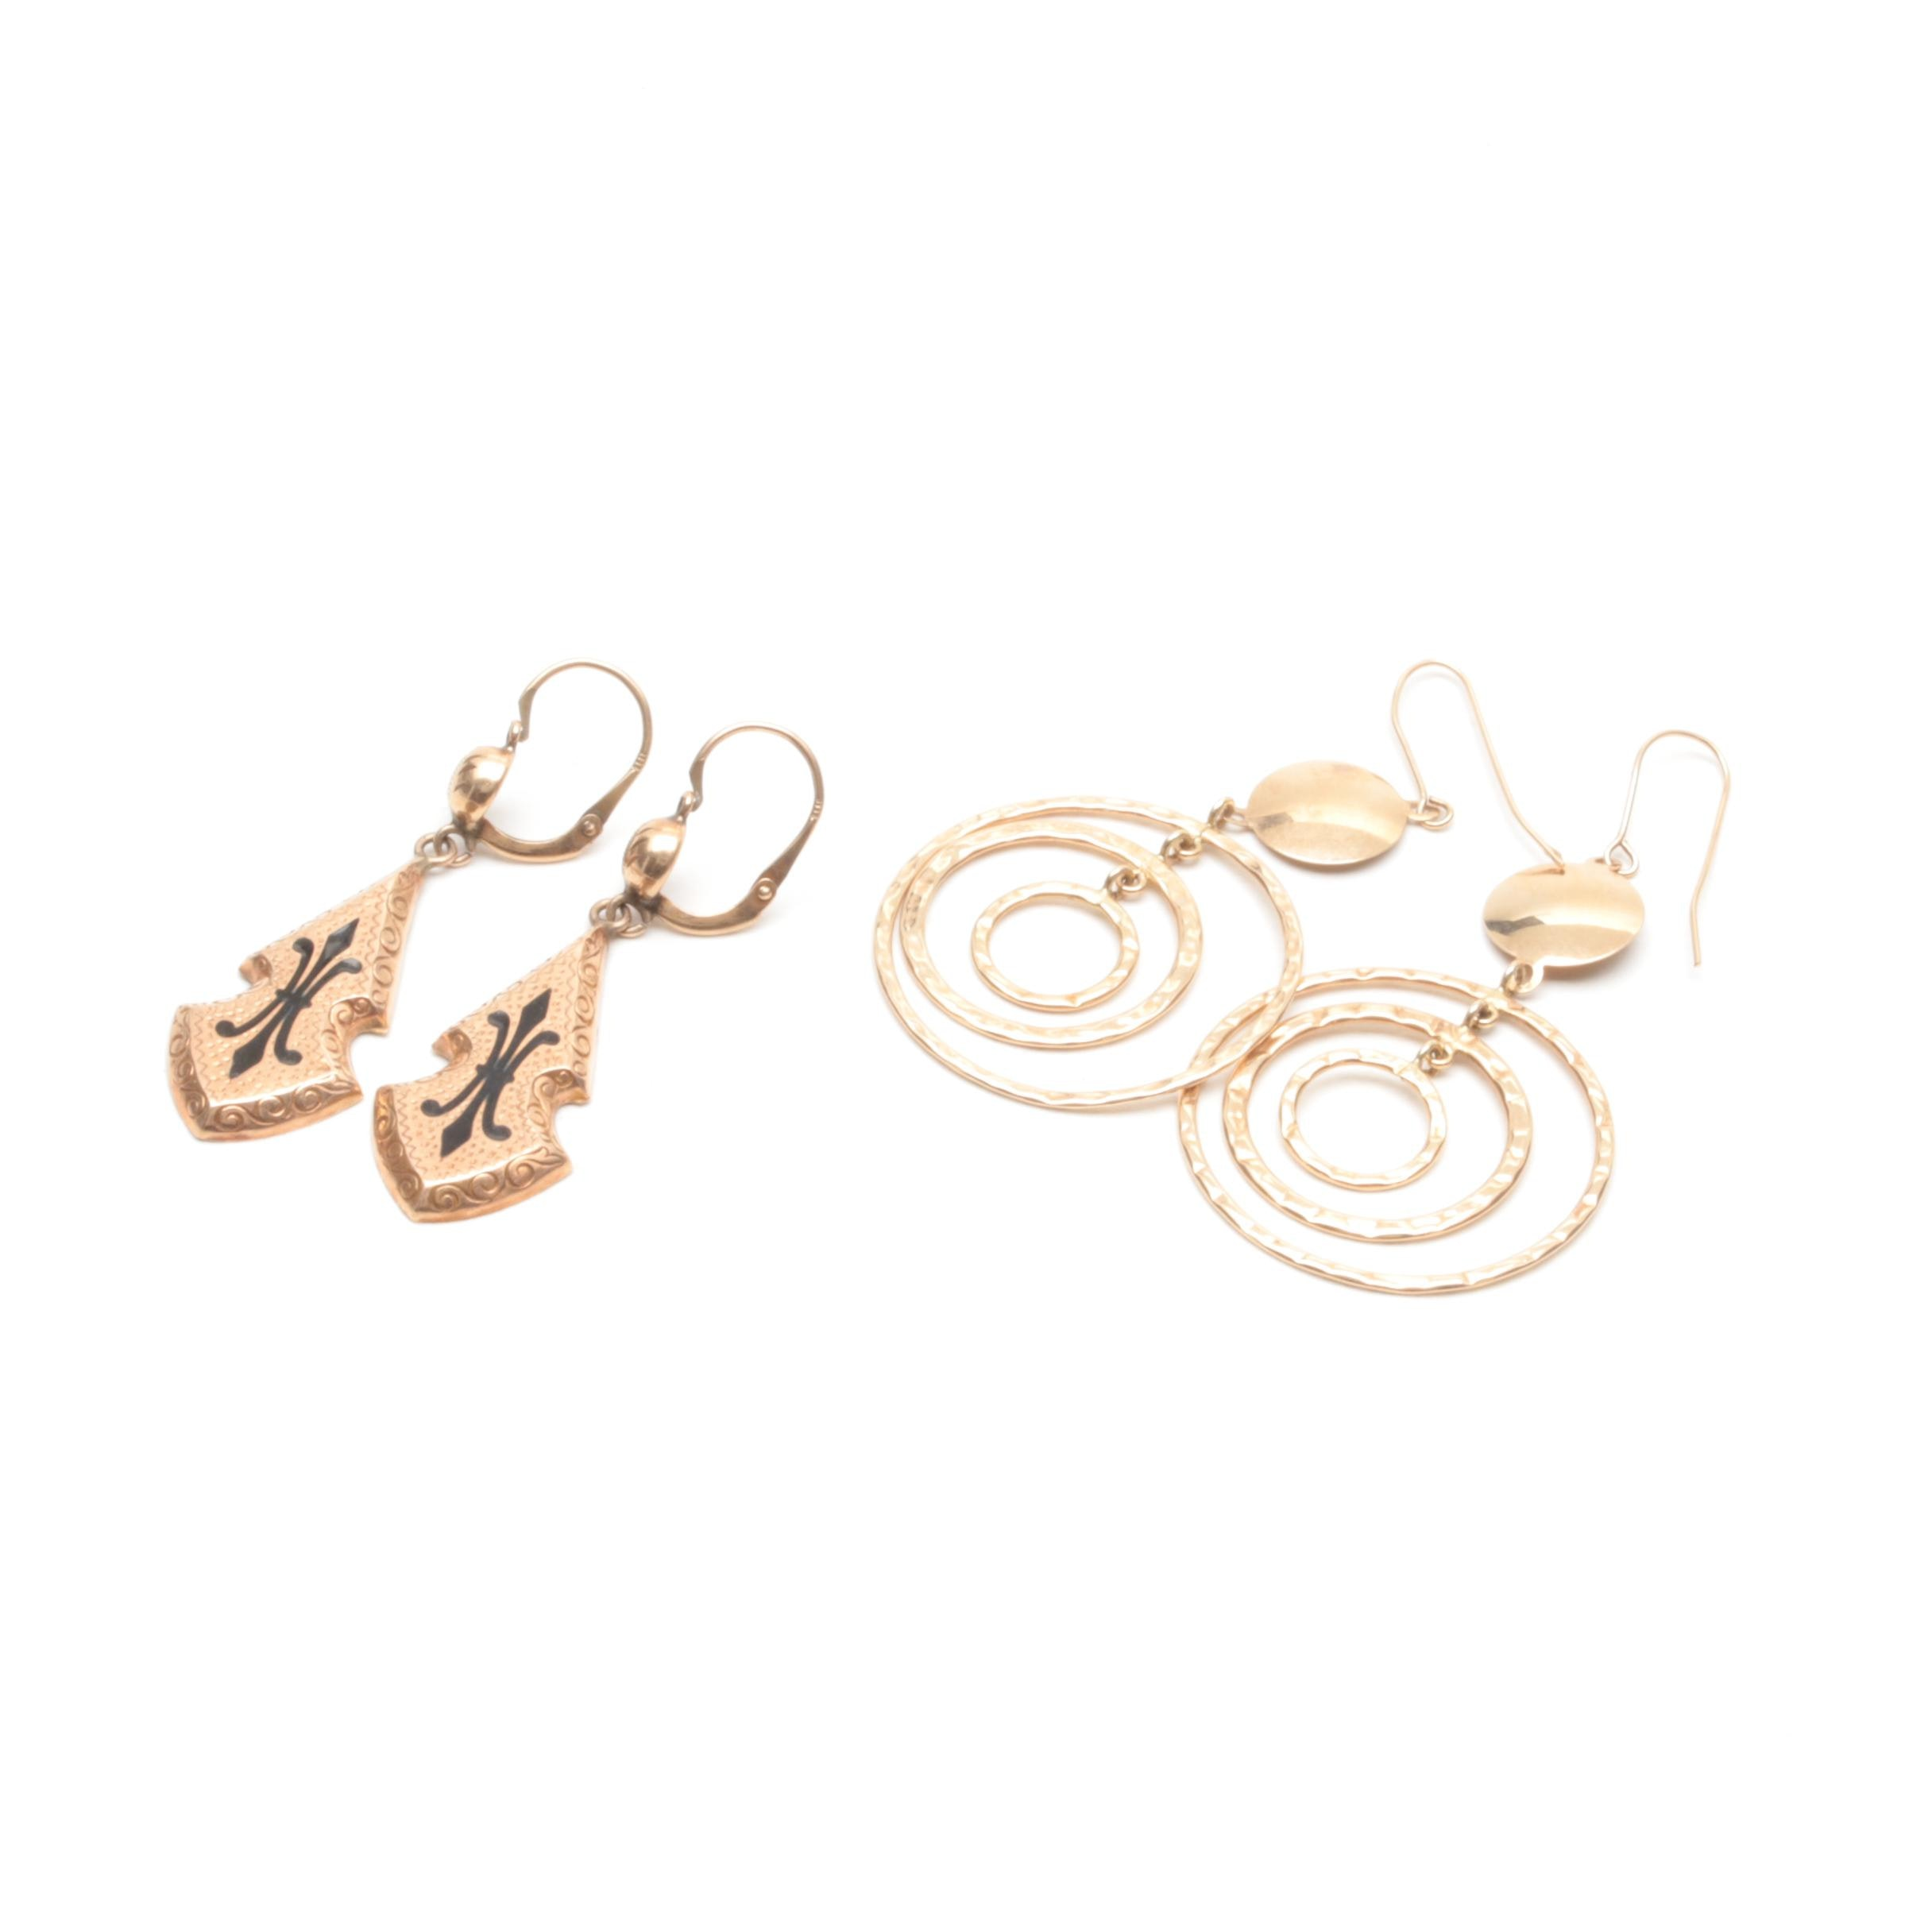 10K Yellow Gold Earring Selection Including Enamel